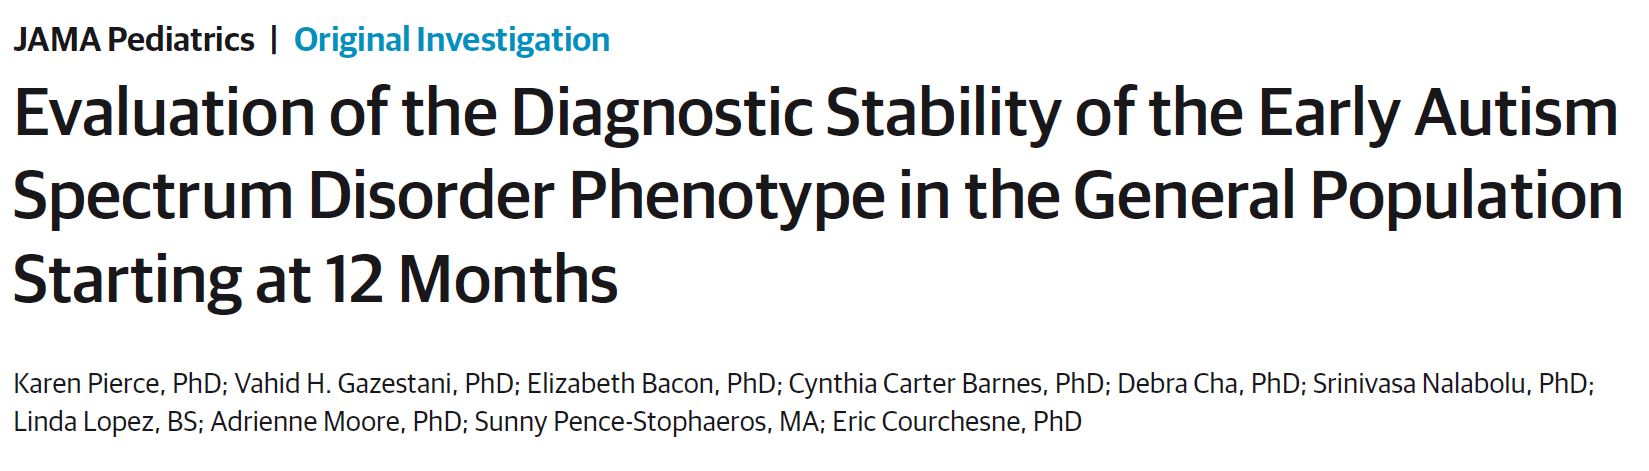 Evaluation of the Diagnostic Stability of the Early Autism Spectrum Disorder Phenotype in the General Population Starting at 12 Months